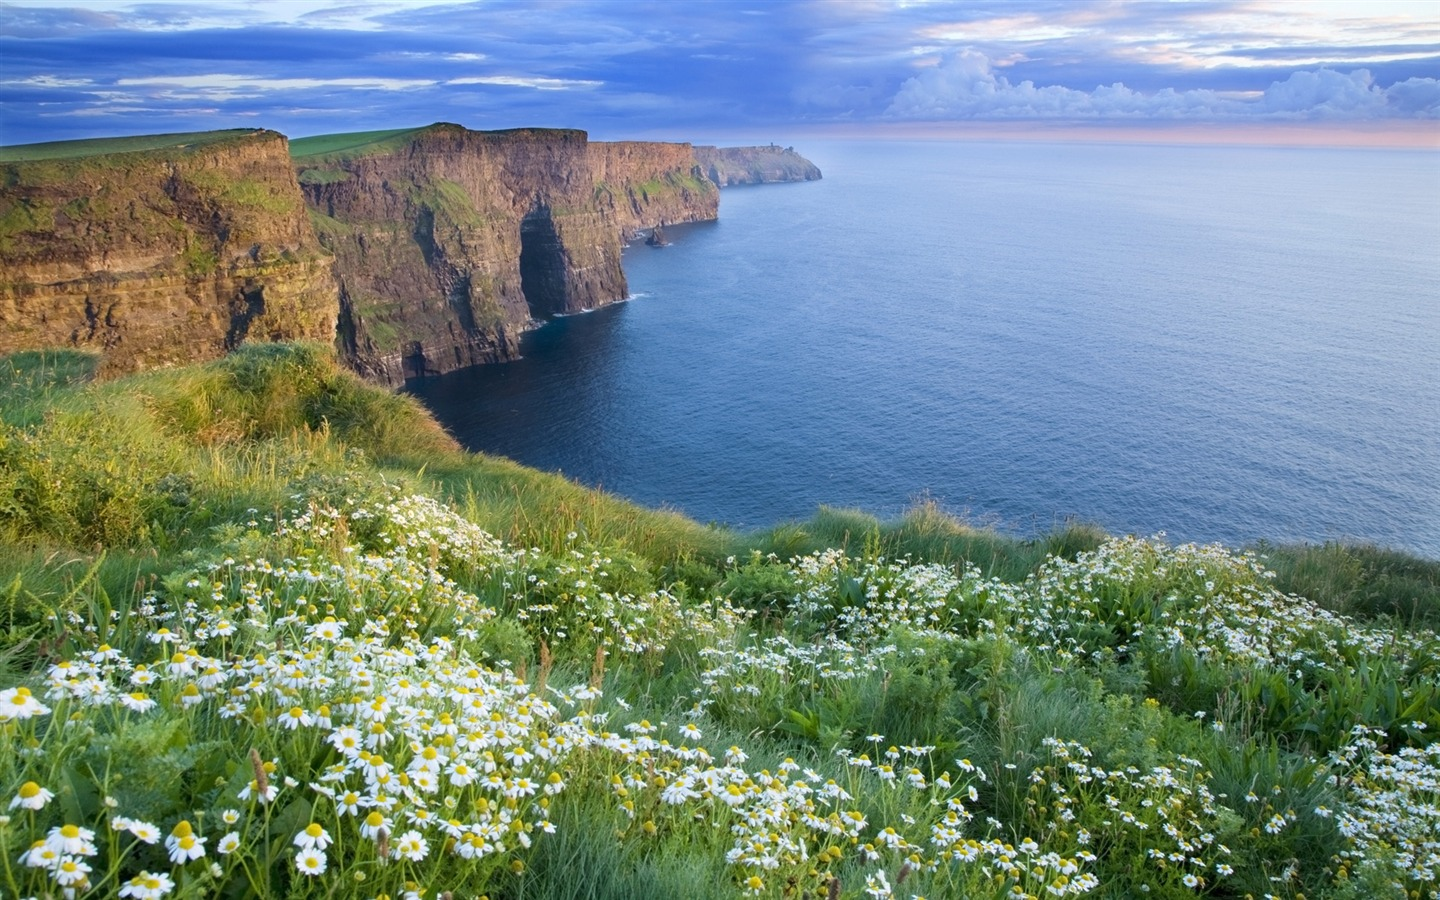 Ireland Scenery Wallpaper Beautiful Scenery of Ireland